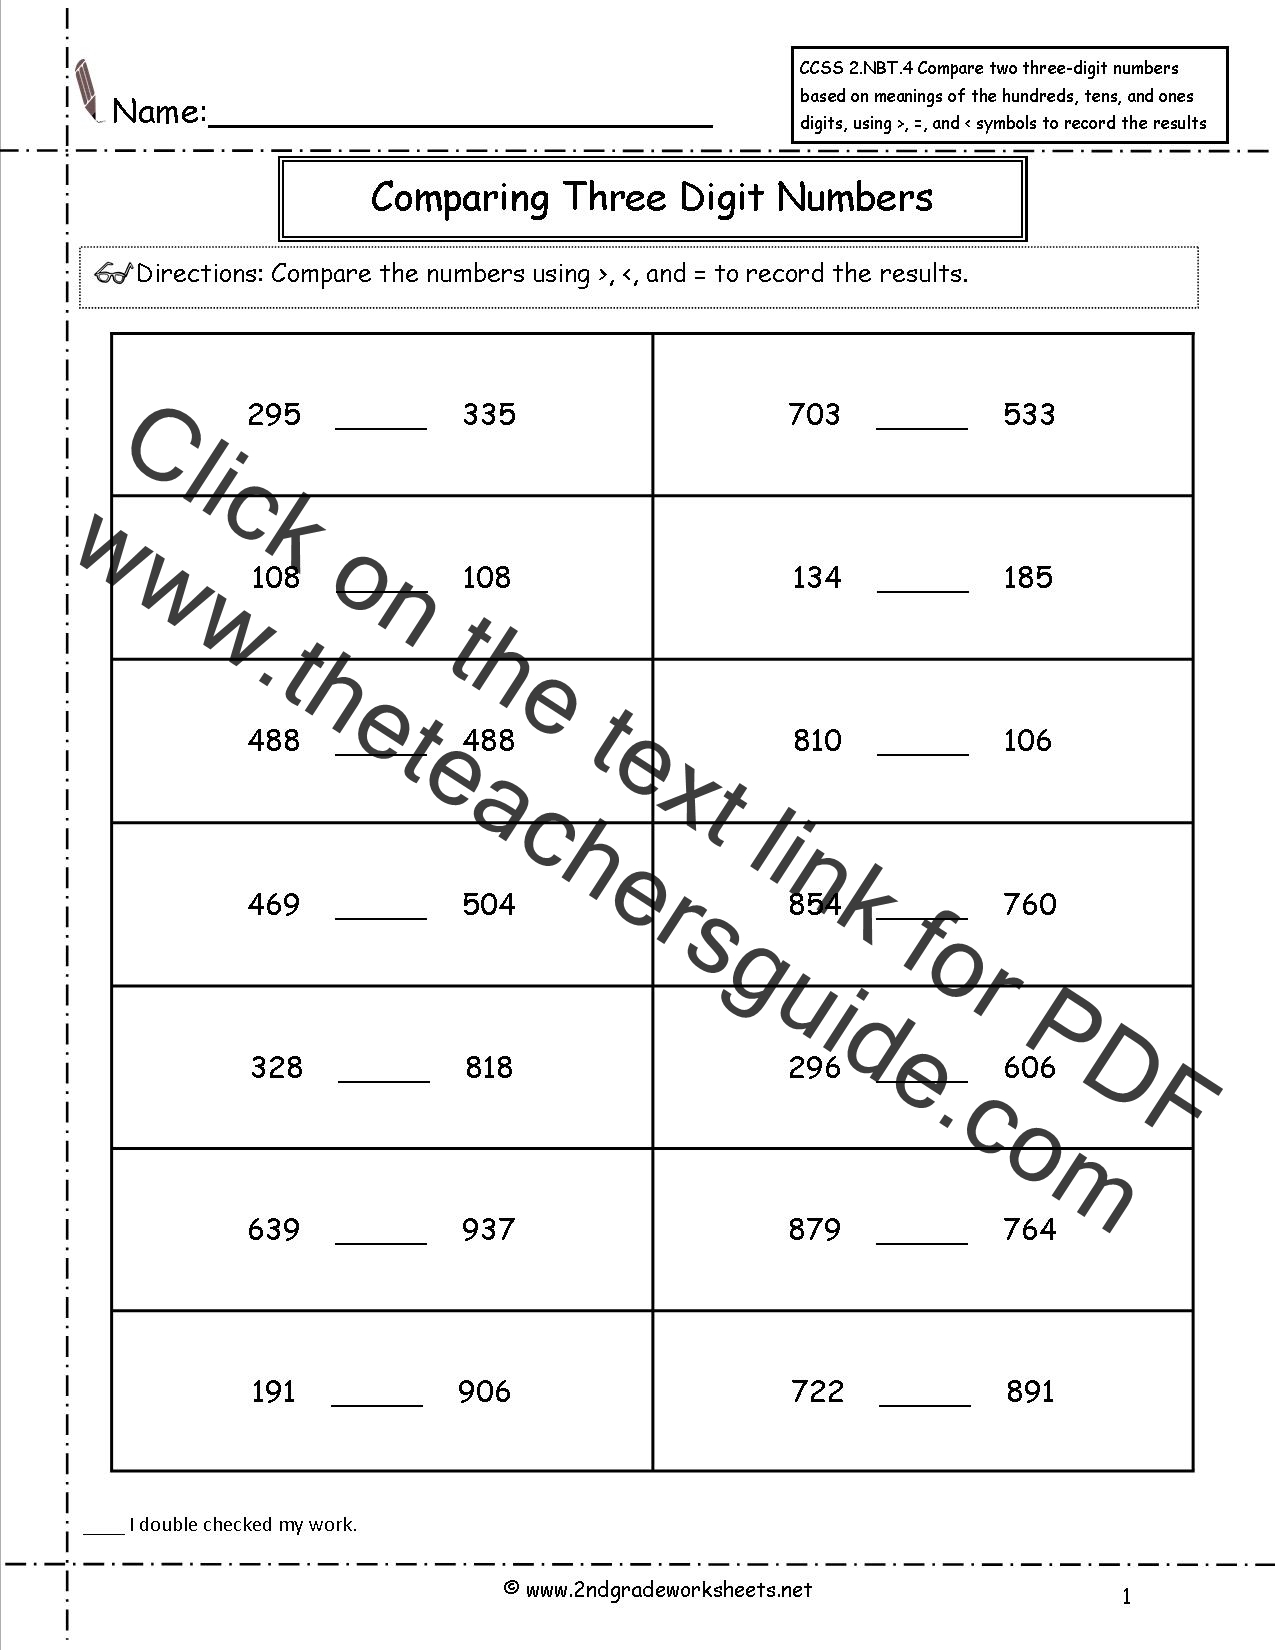 Printables Common Core Standards Worksheets 2nd grade math common core state standards worksheets nbt 4 worksheets